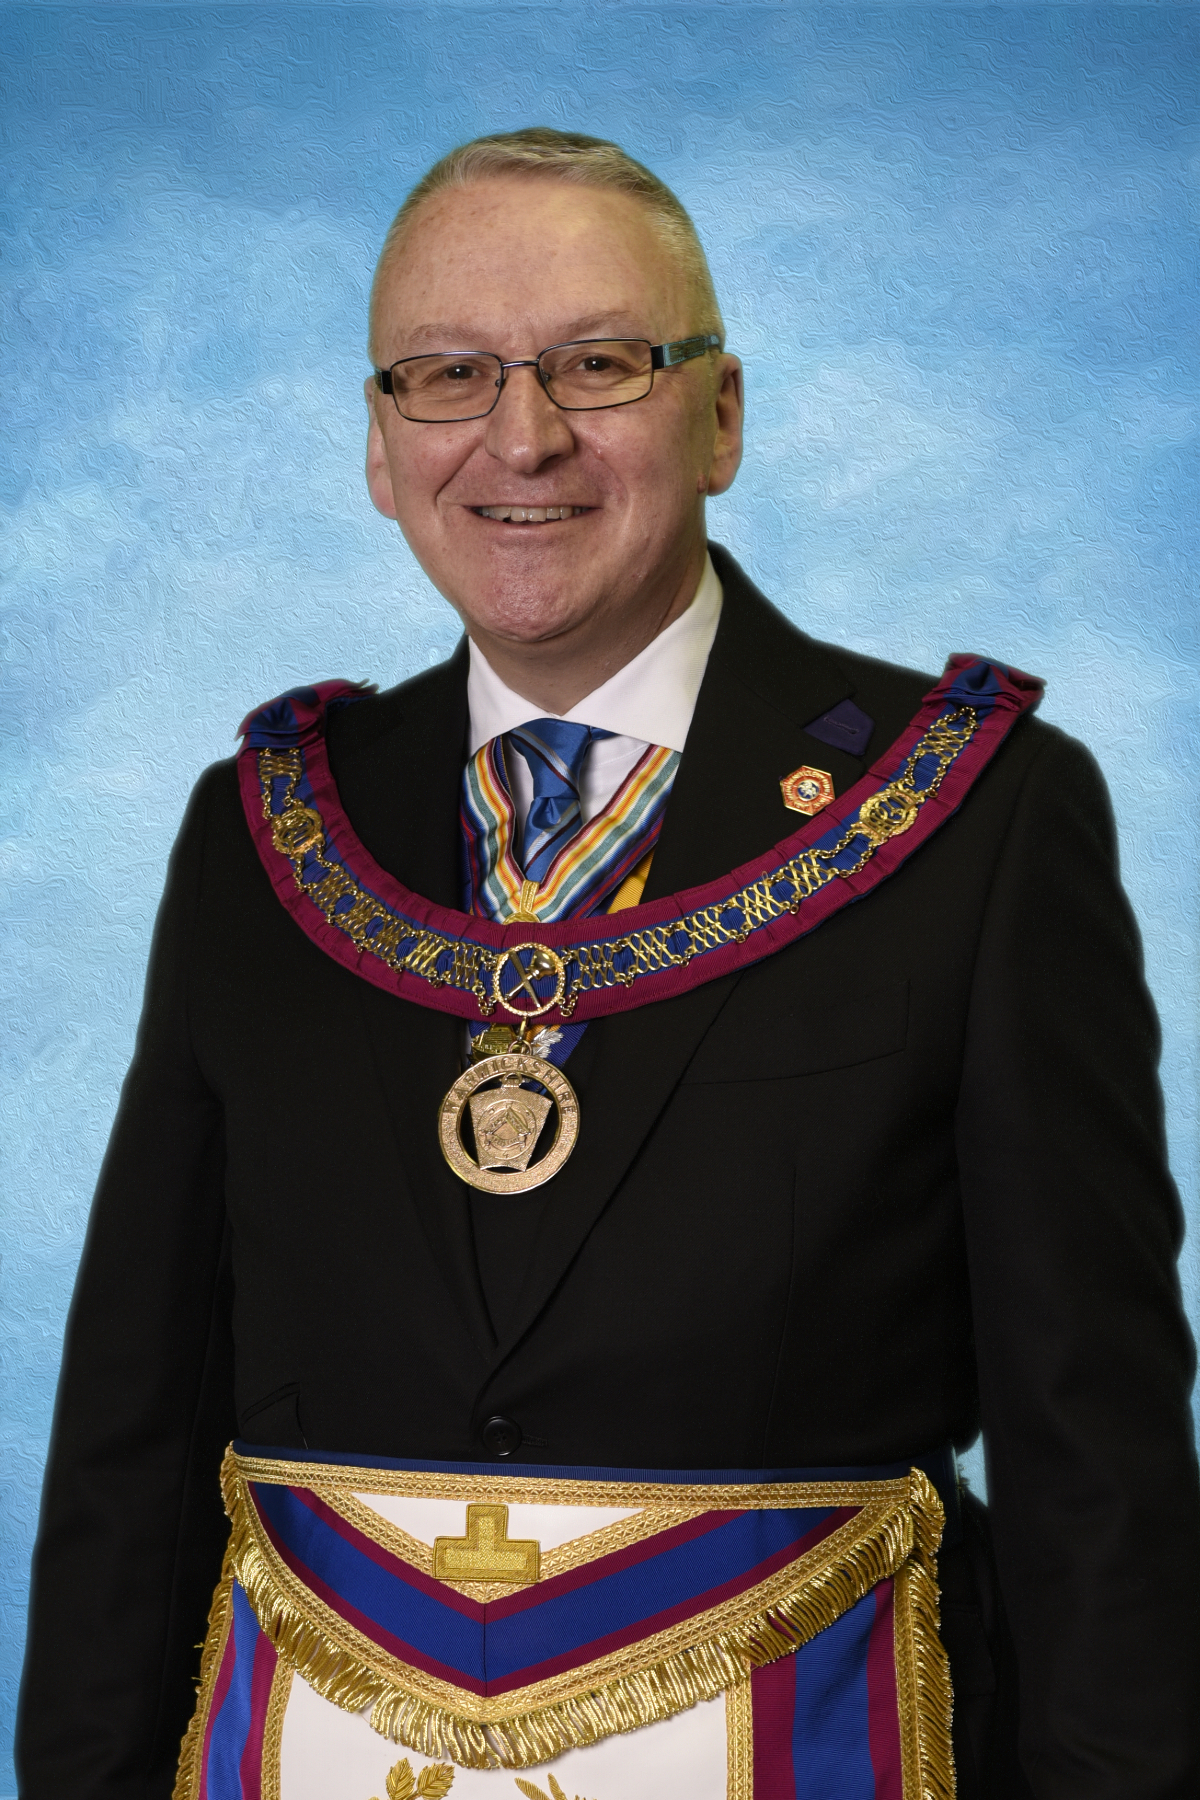 Andrew R. Armbrister, Assistant Provincial Grand Master